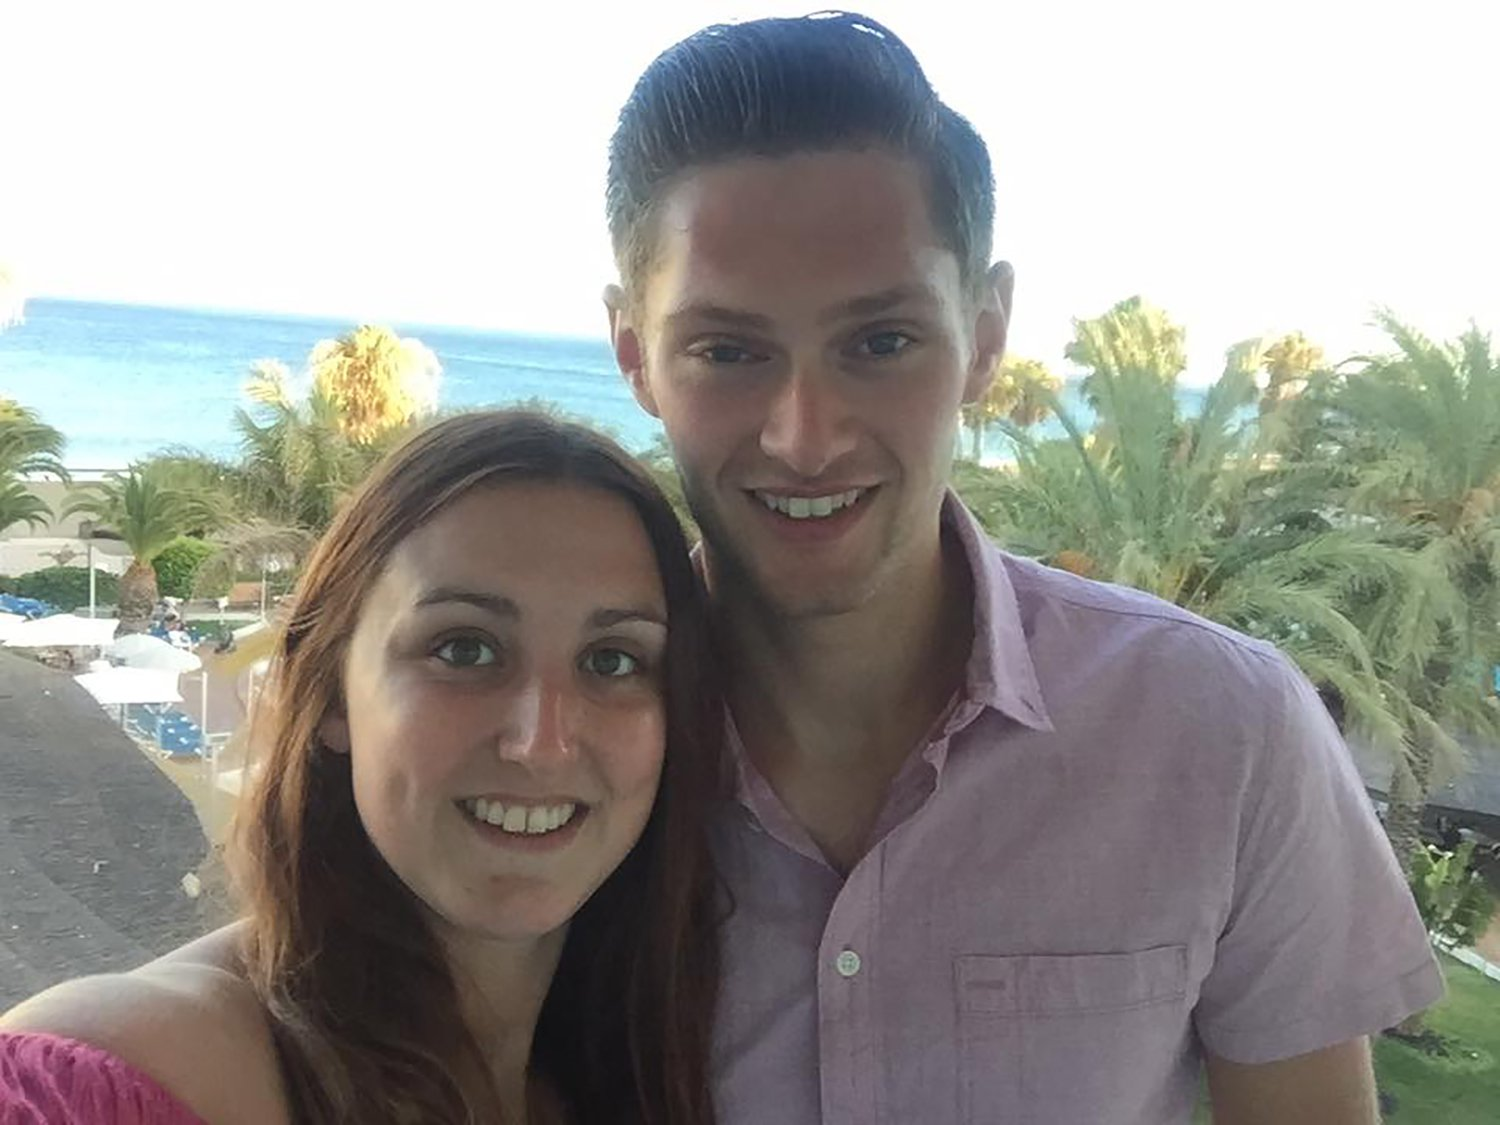 Mountain biker Ryan Bullimore, 23, who was killed on Tuesday evening (05.06.18) when he hit a tree on a trail he helped to design and build at Tirpentwys trails near Pontypool in South Wales. Pictured is Ryan with his girlfriend Ceri Edmunds. Picture use with permission of the Bullimore family.